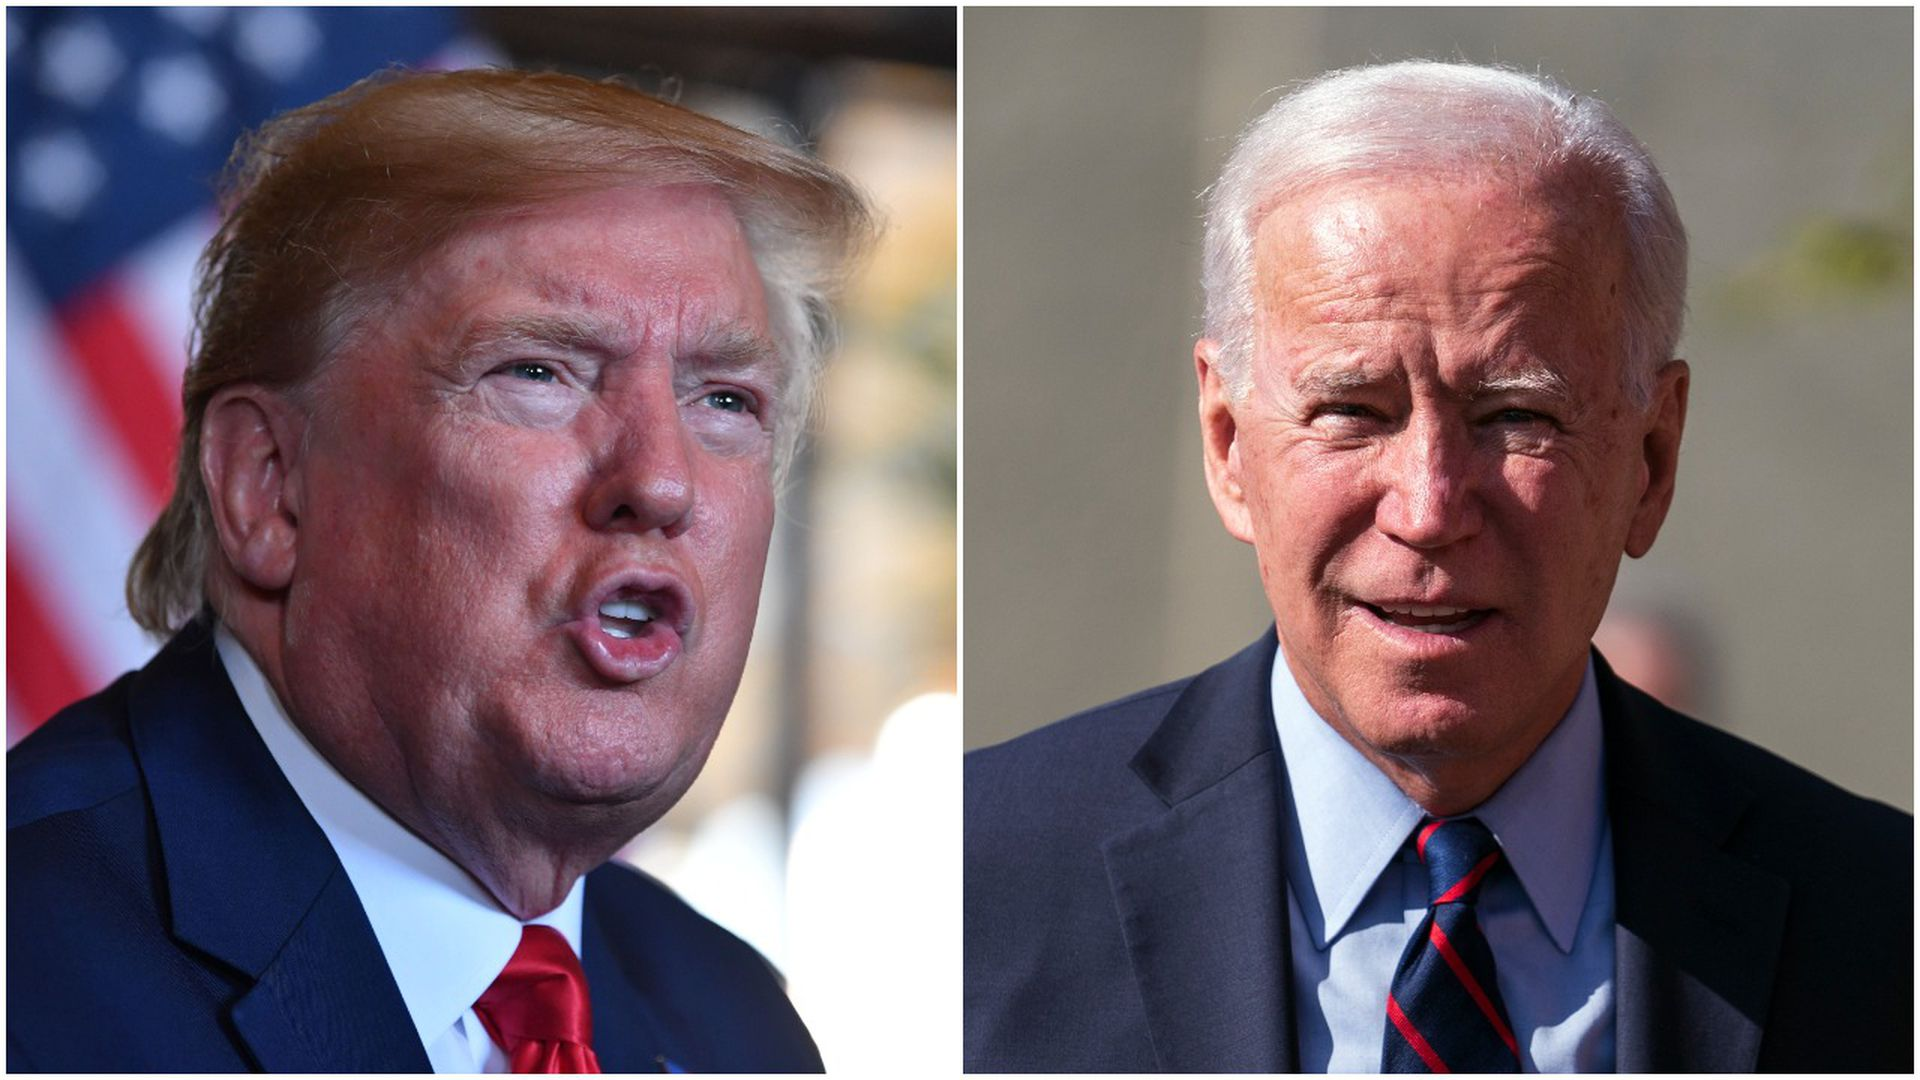 President Trump and former Vice President Joe Biden